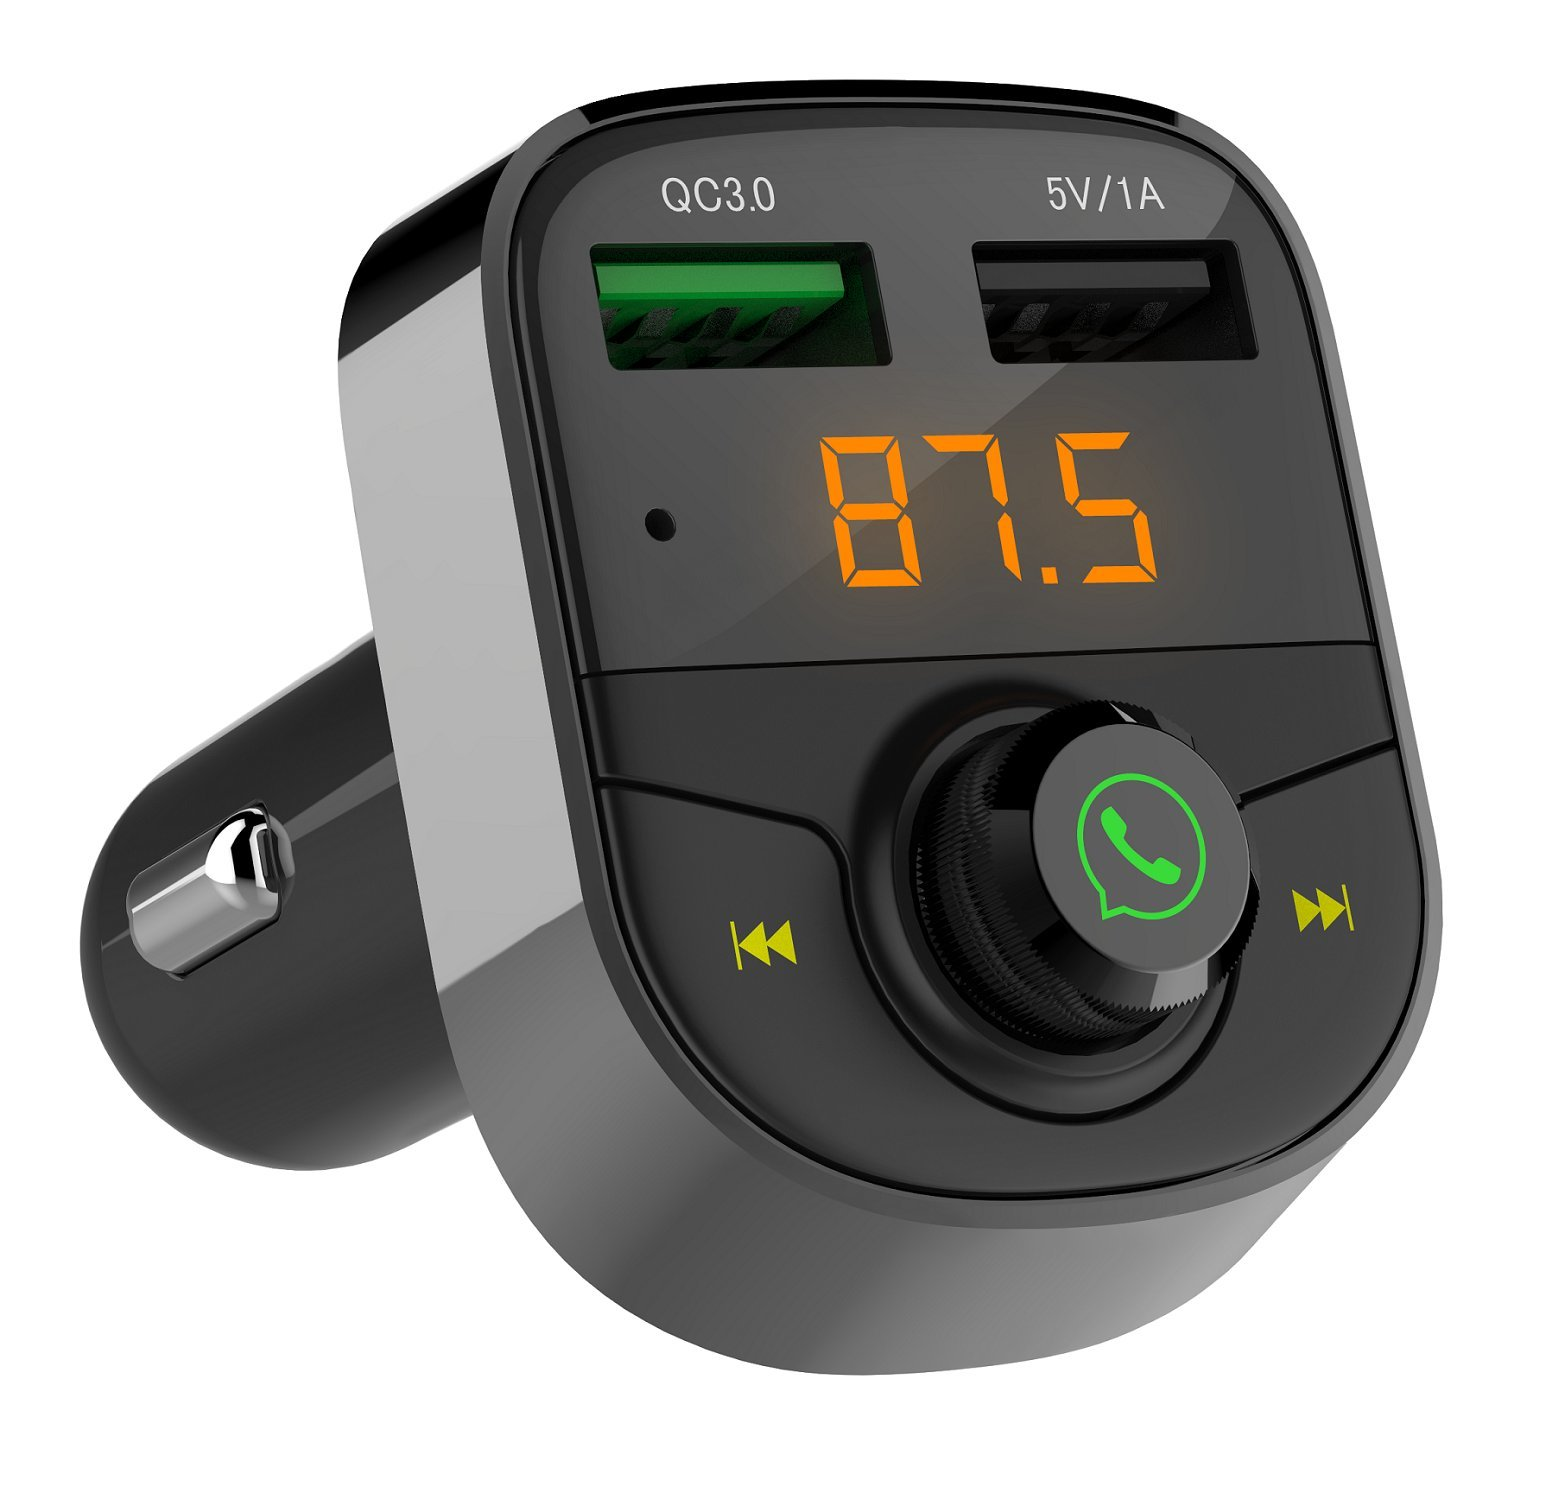 Wireless Bluetooth FM Transmitter for Car,Call Music Receiver and Adapter,USB Ports Support Fast Charger and USB Flash Drive fit for iphone,Samsung,most Bluetooth Electronics